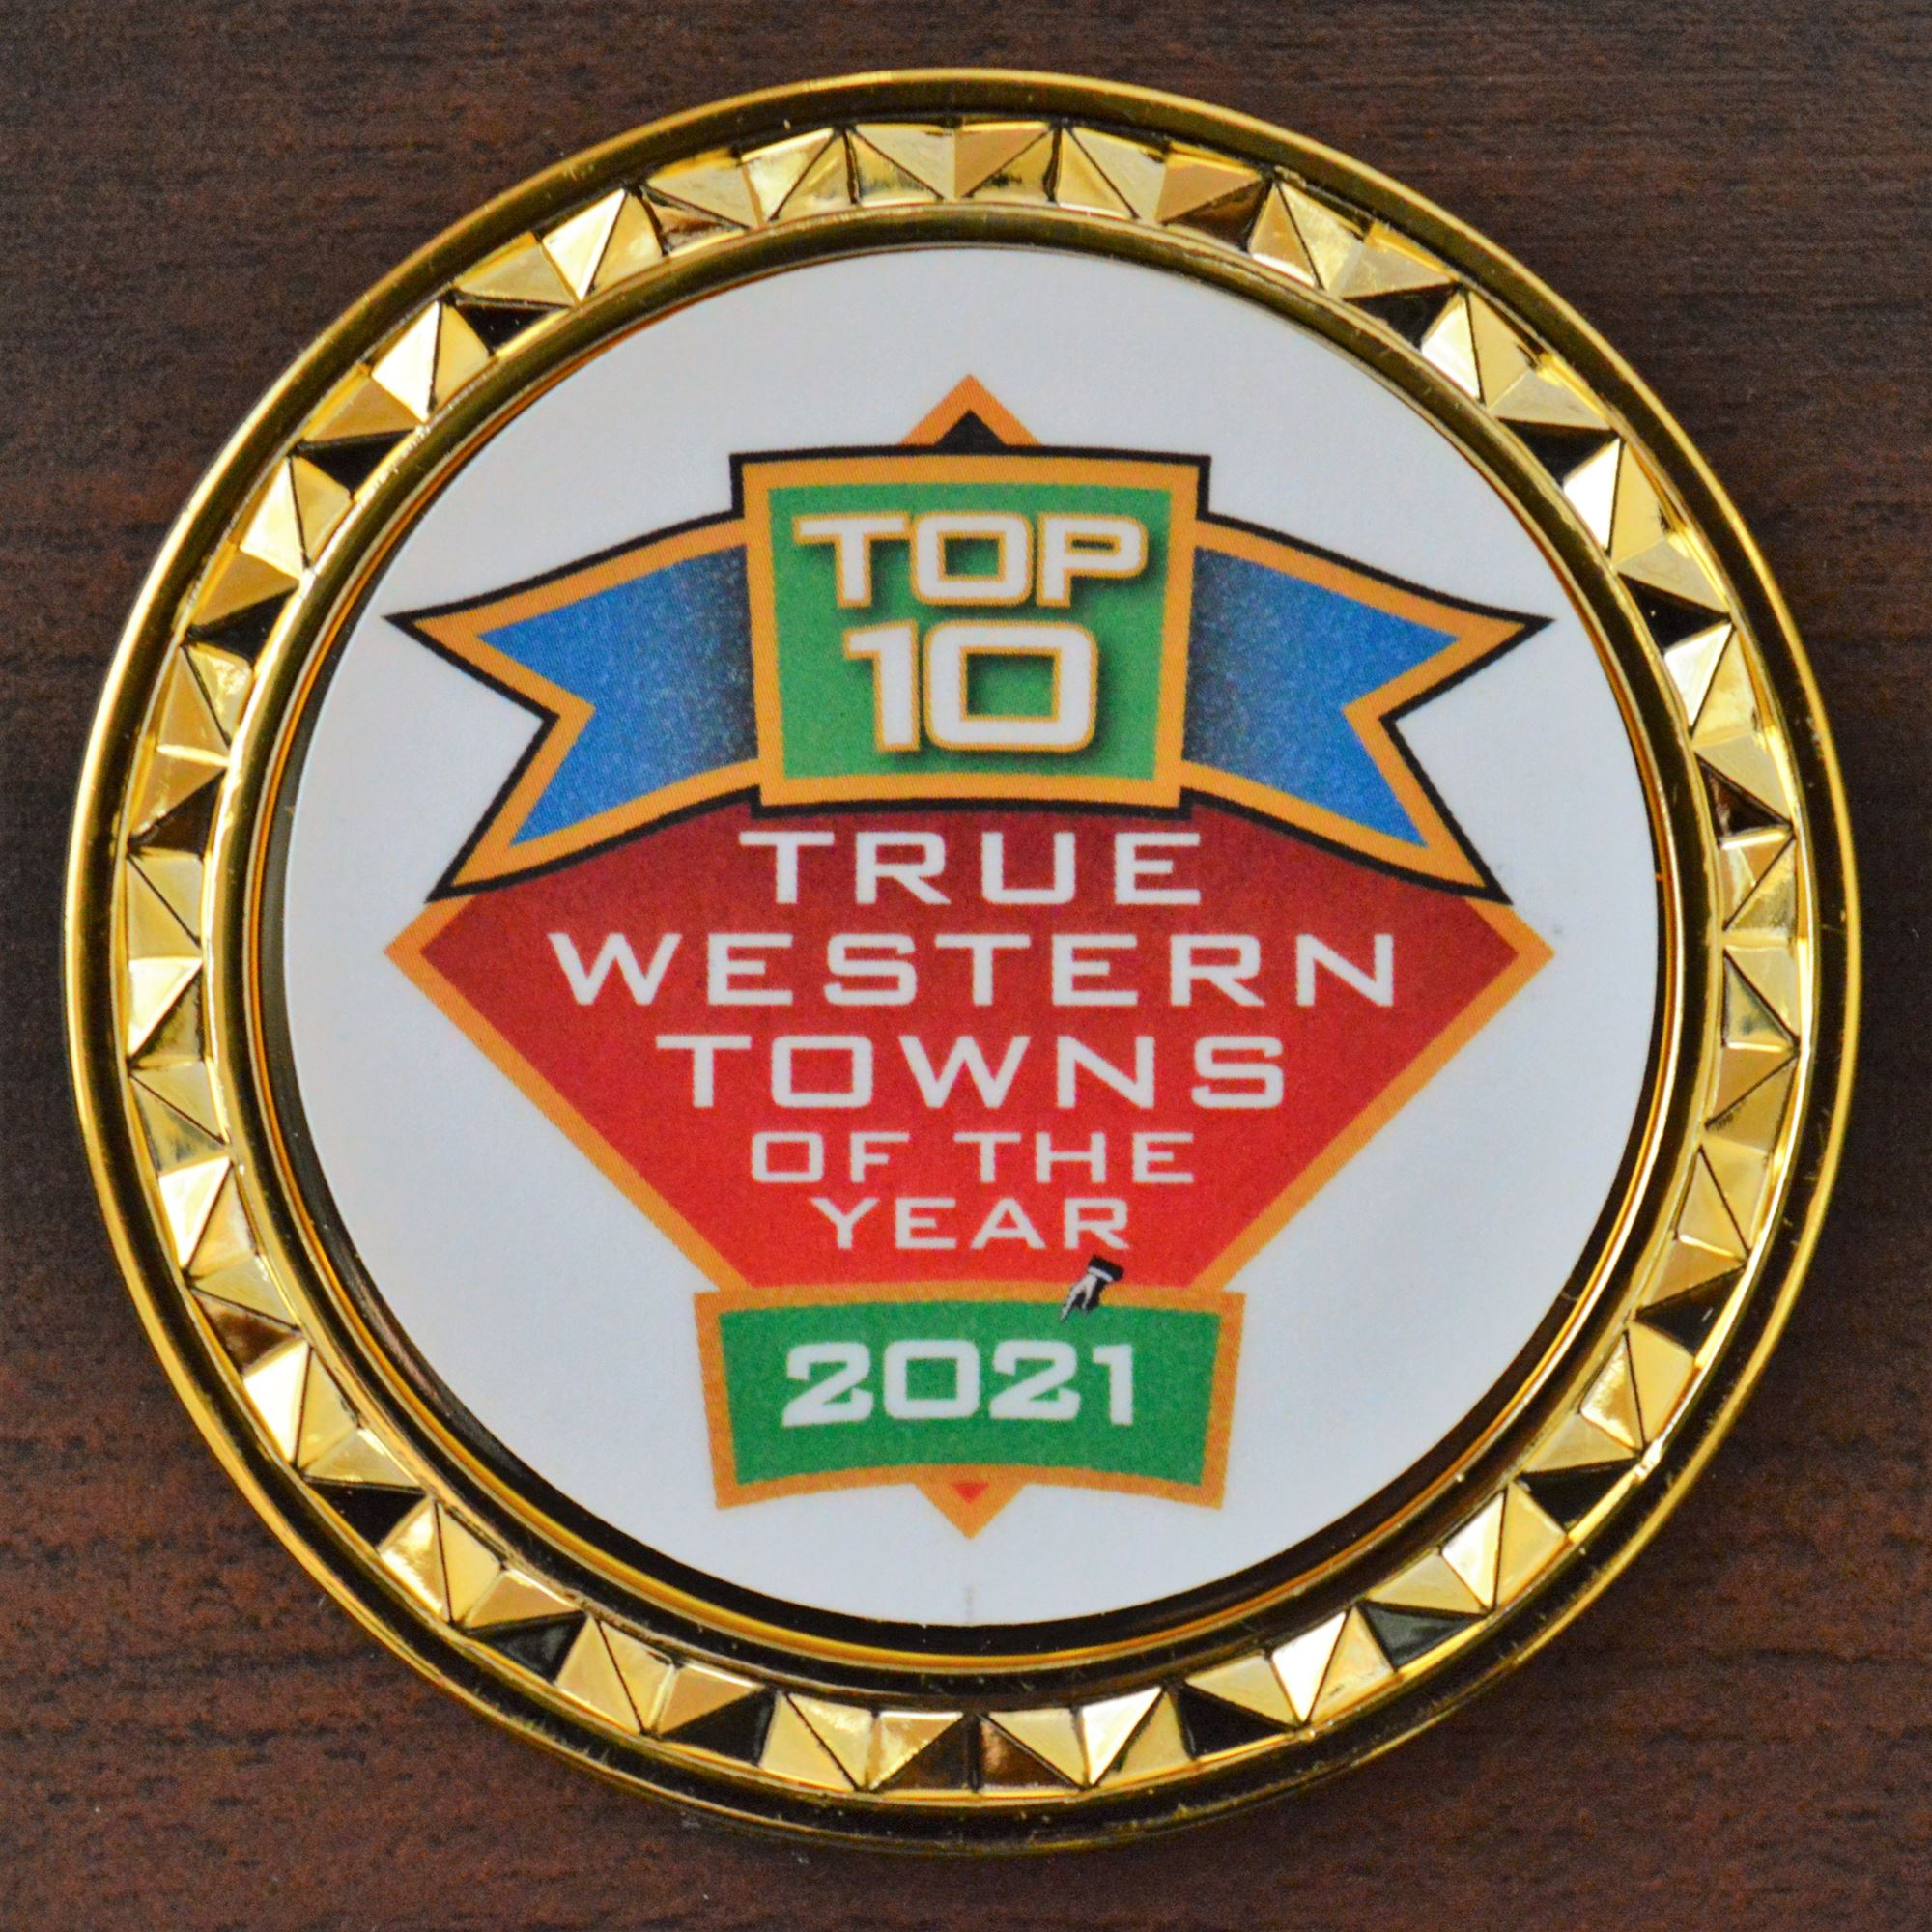 Top 10 Western Towns 2021 - San Angelo Claims #2 Spot